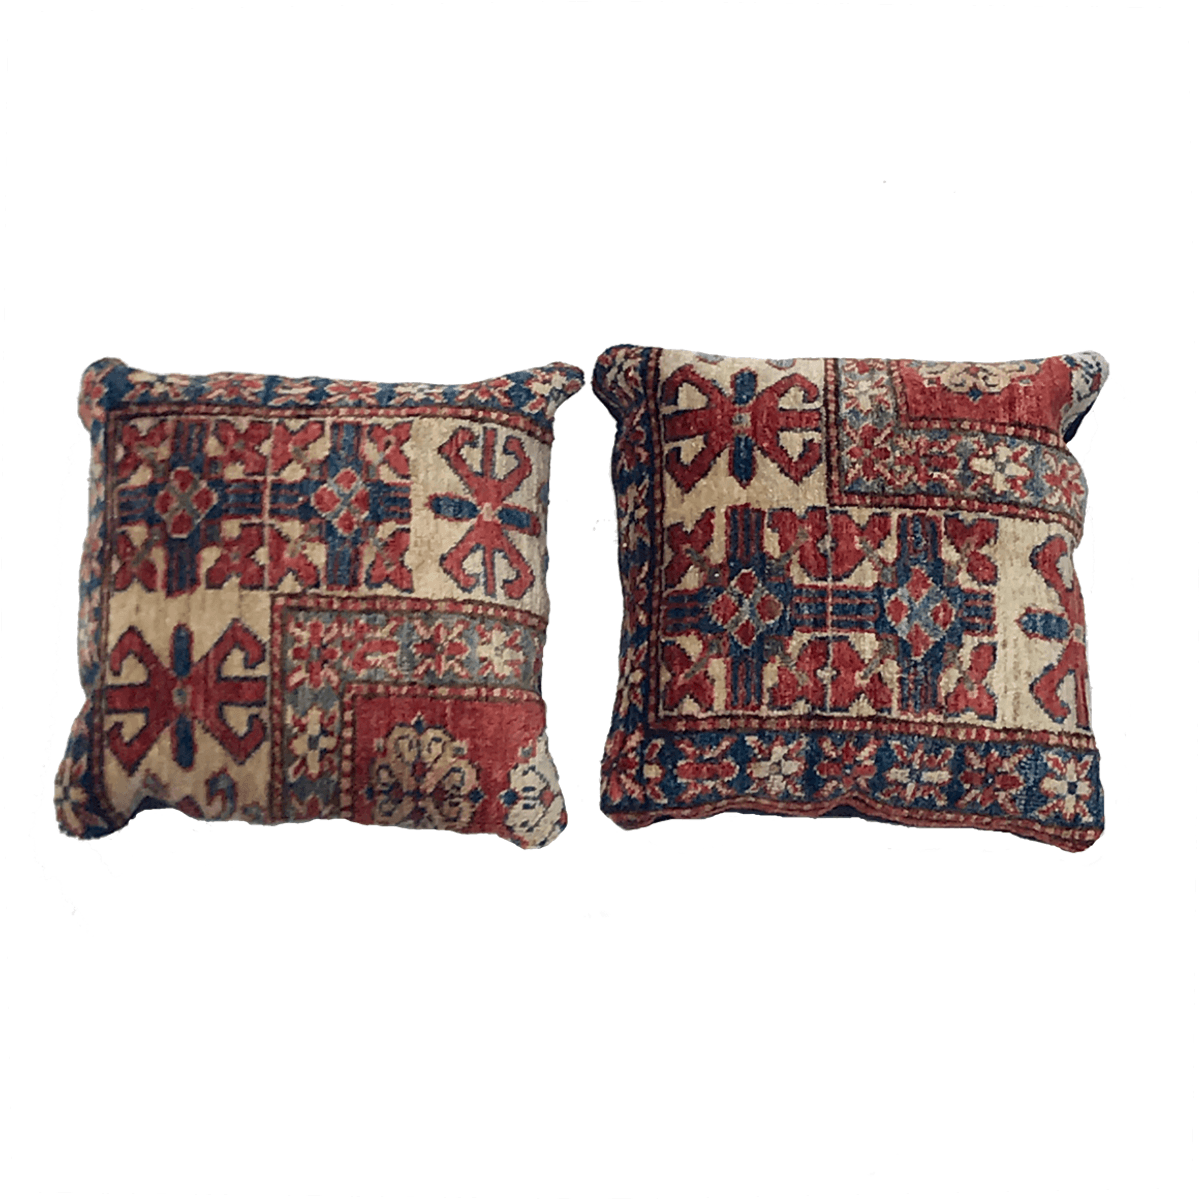 Domada_CW-21P_Persian_Kazak_Rug_Pillows.png